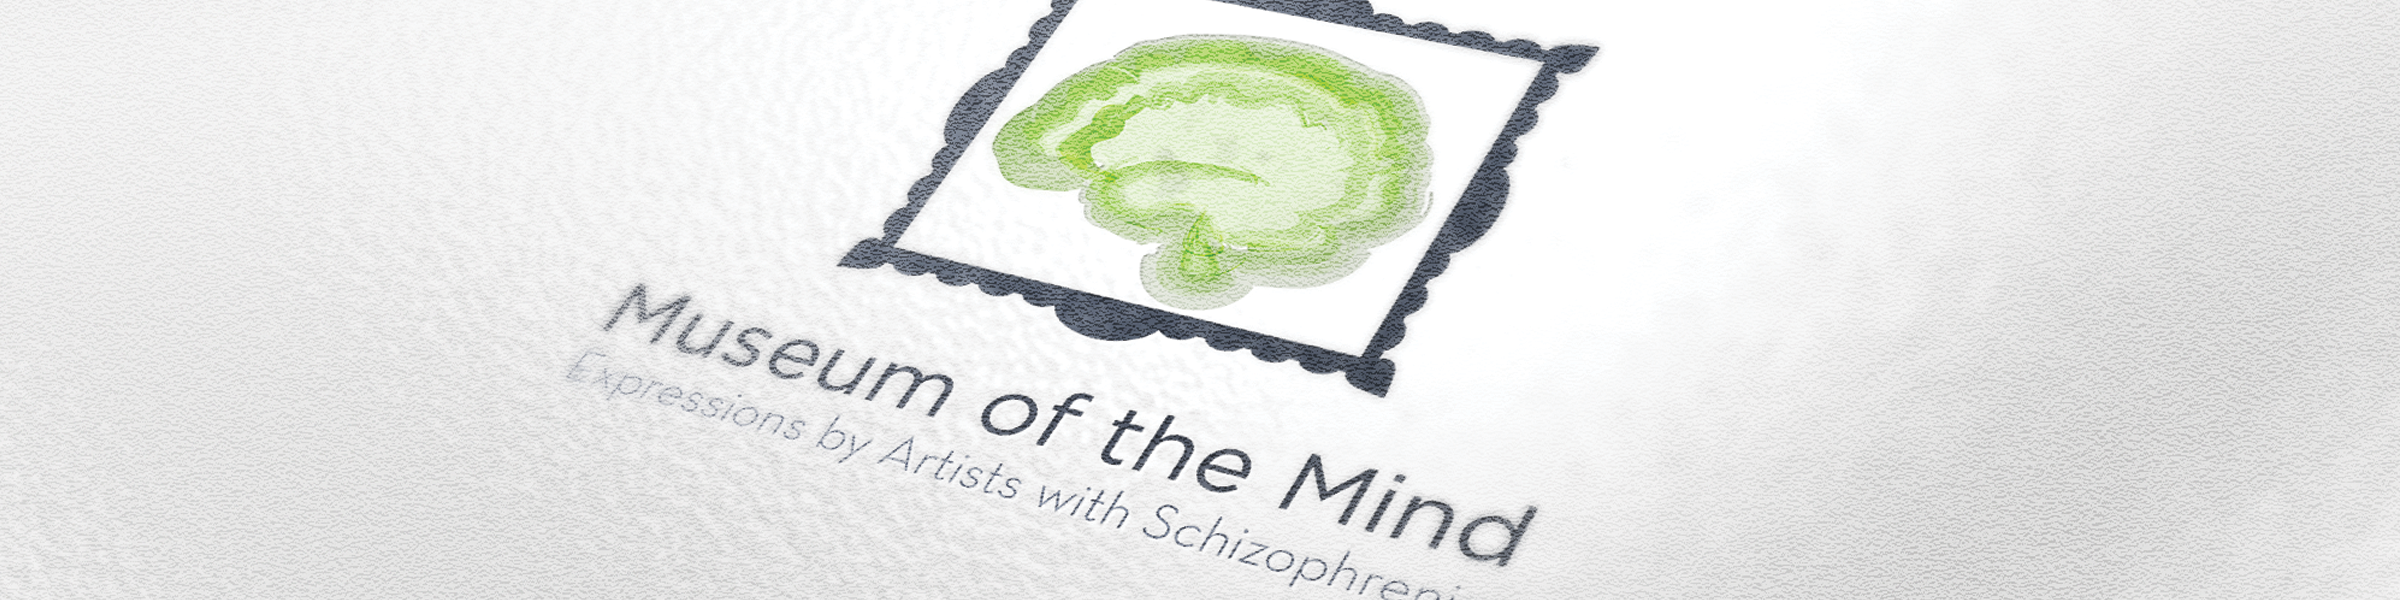 Museum of the Mind Branding